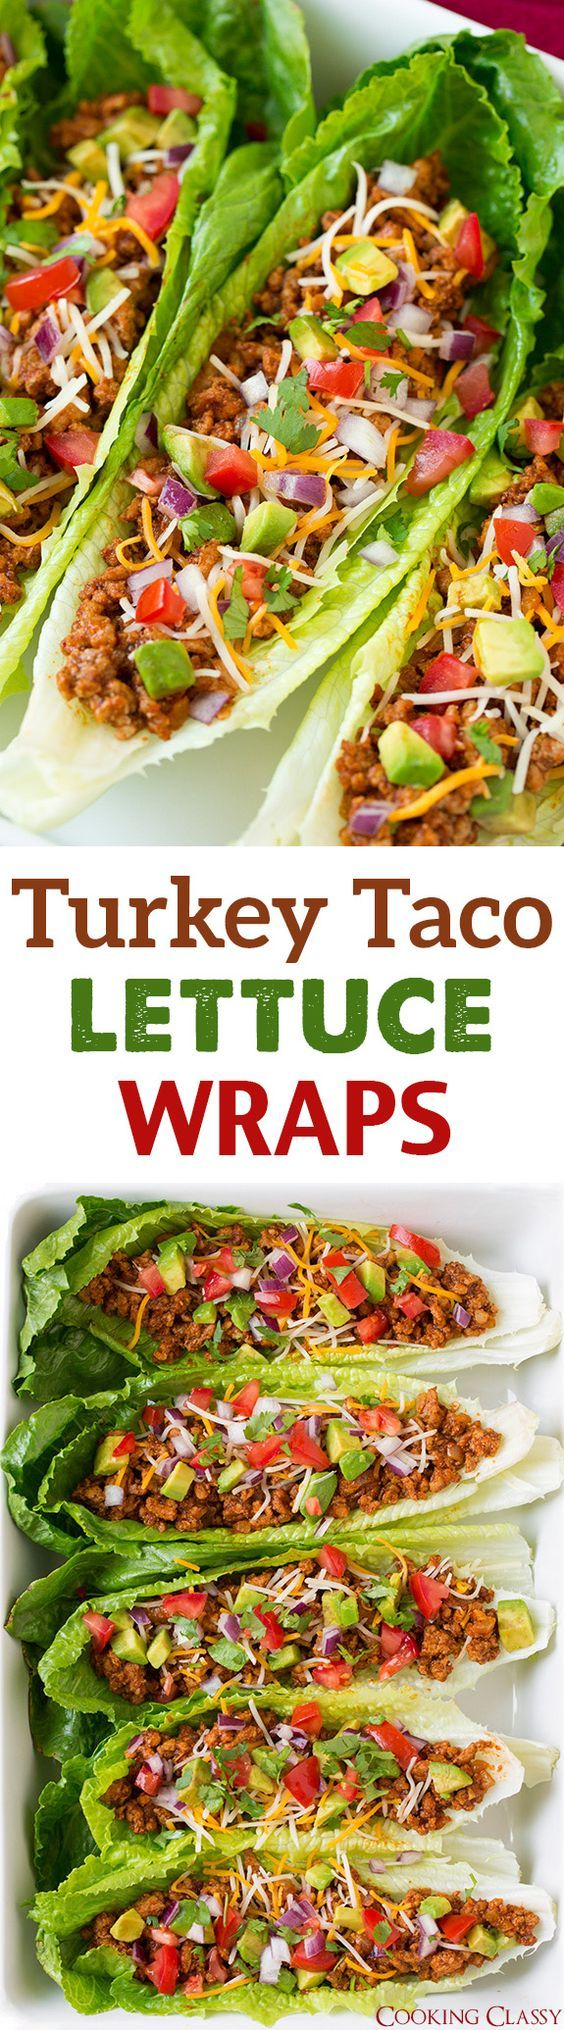 Repin This Delicious Recipe to Help Your Friends and Followers Start to Eat Healthy! This is a great Addition to Your Diet Right Now!  Check out the Recipe here: http://alltherecipes.co/7610/Turkey-Taco-Lettuce-Wraps-Cooking-Classy-1465841994